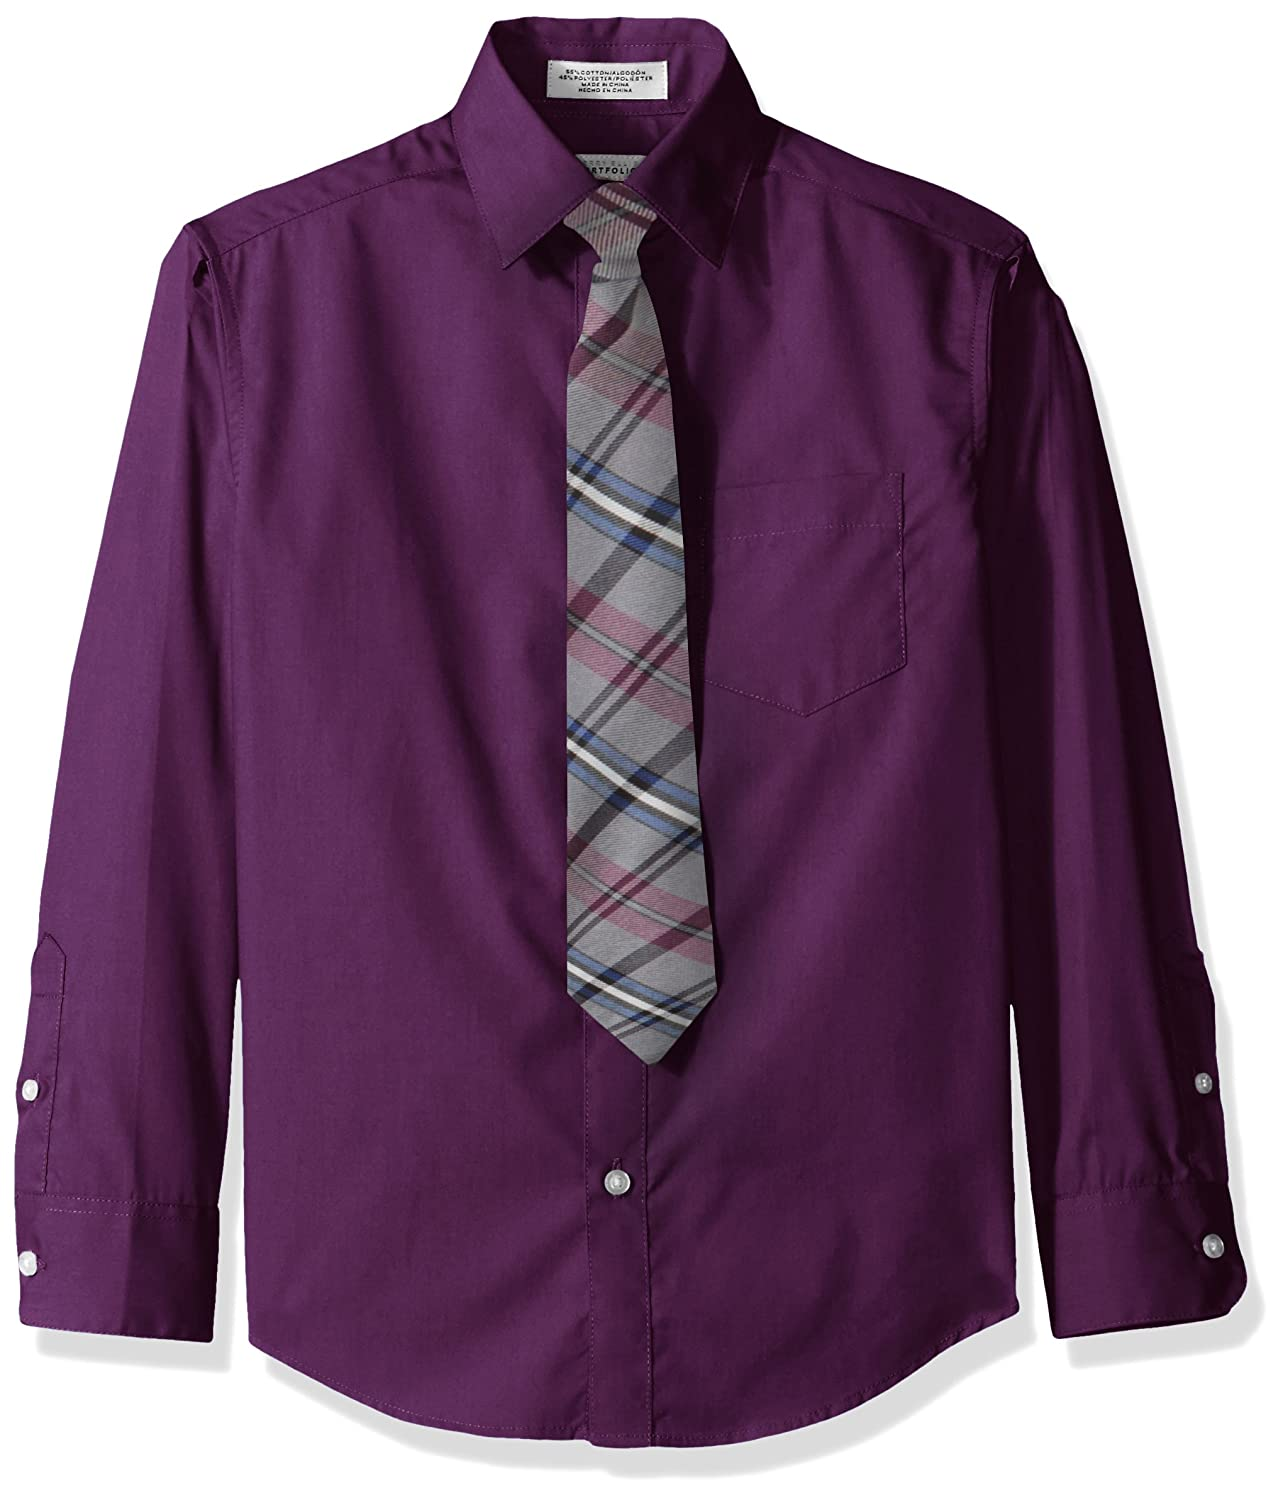 Perry Ellis Boys' SOLID BROADCLOTH PACKED SHIRT WITH TIE